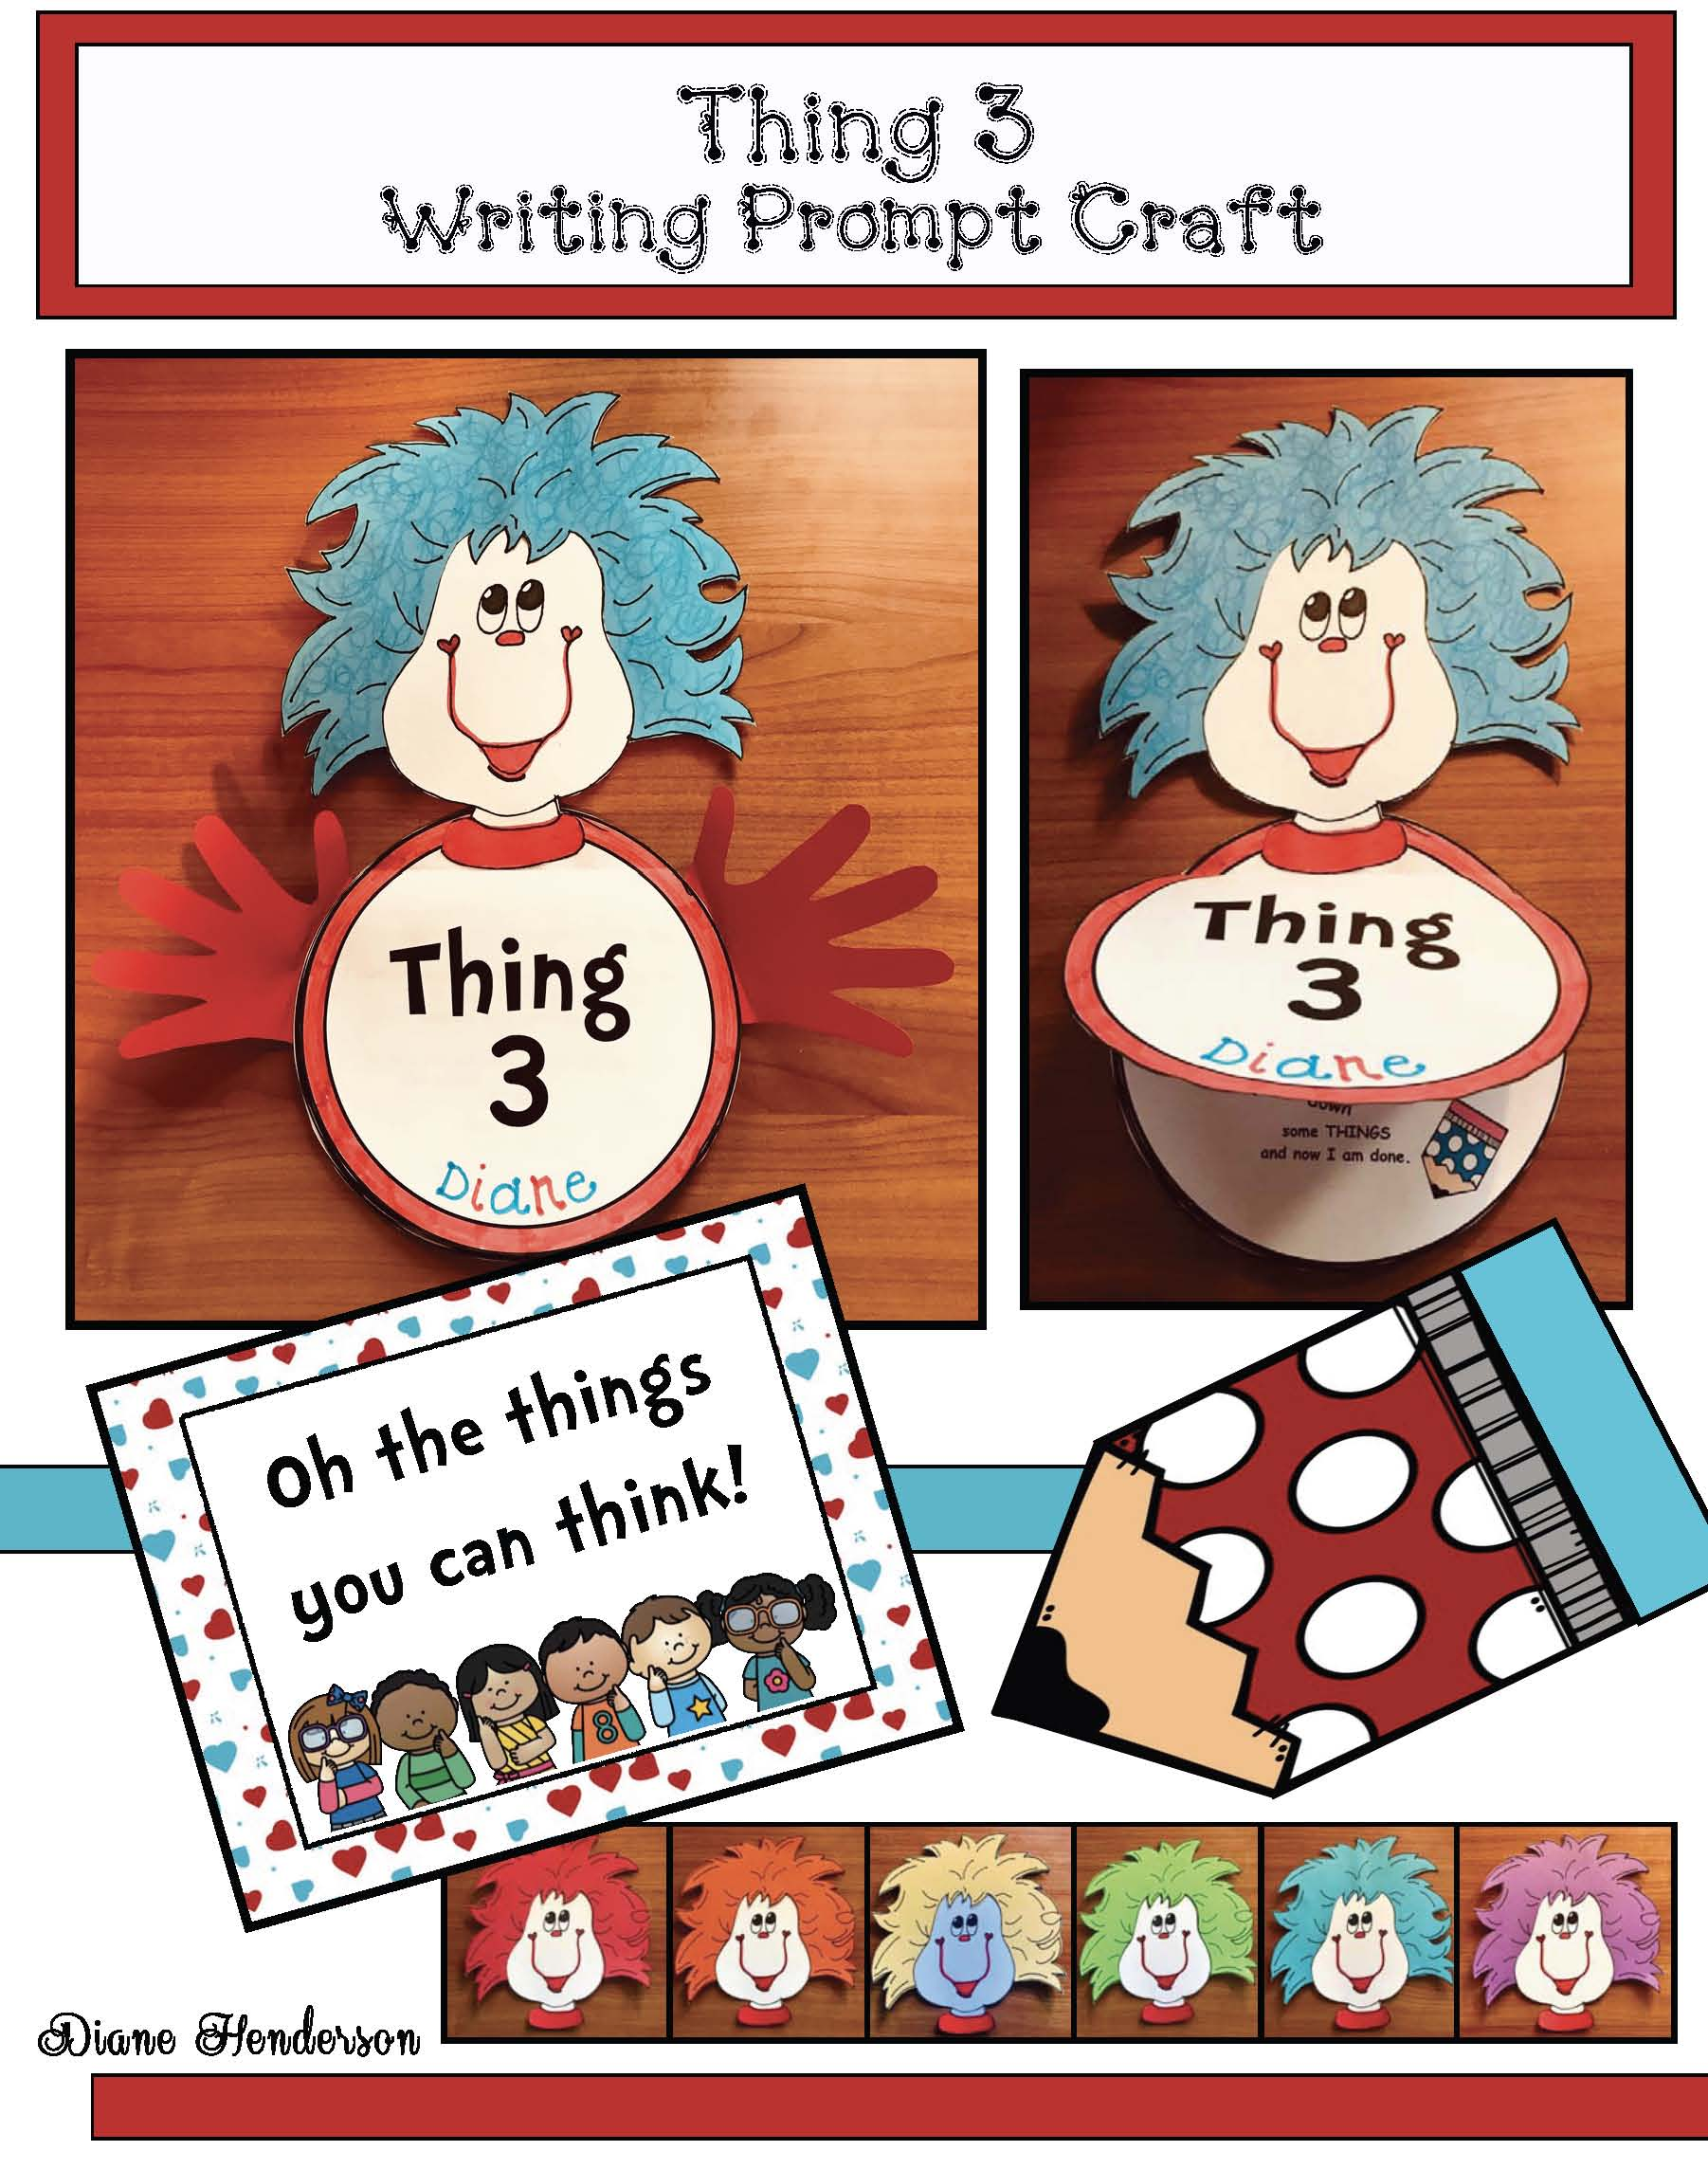 seuss crafts, seuss centers, seuss writing prompts, 5 senses activities, seuss bulletin boards, thing 1 and thing 2 activities, thing 1 and 2 crafts, read across america activities, march is reading month activties